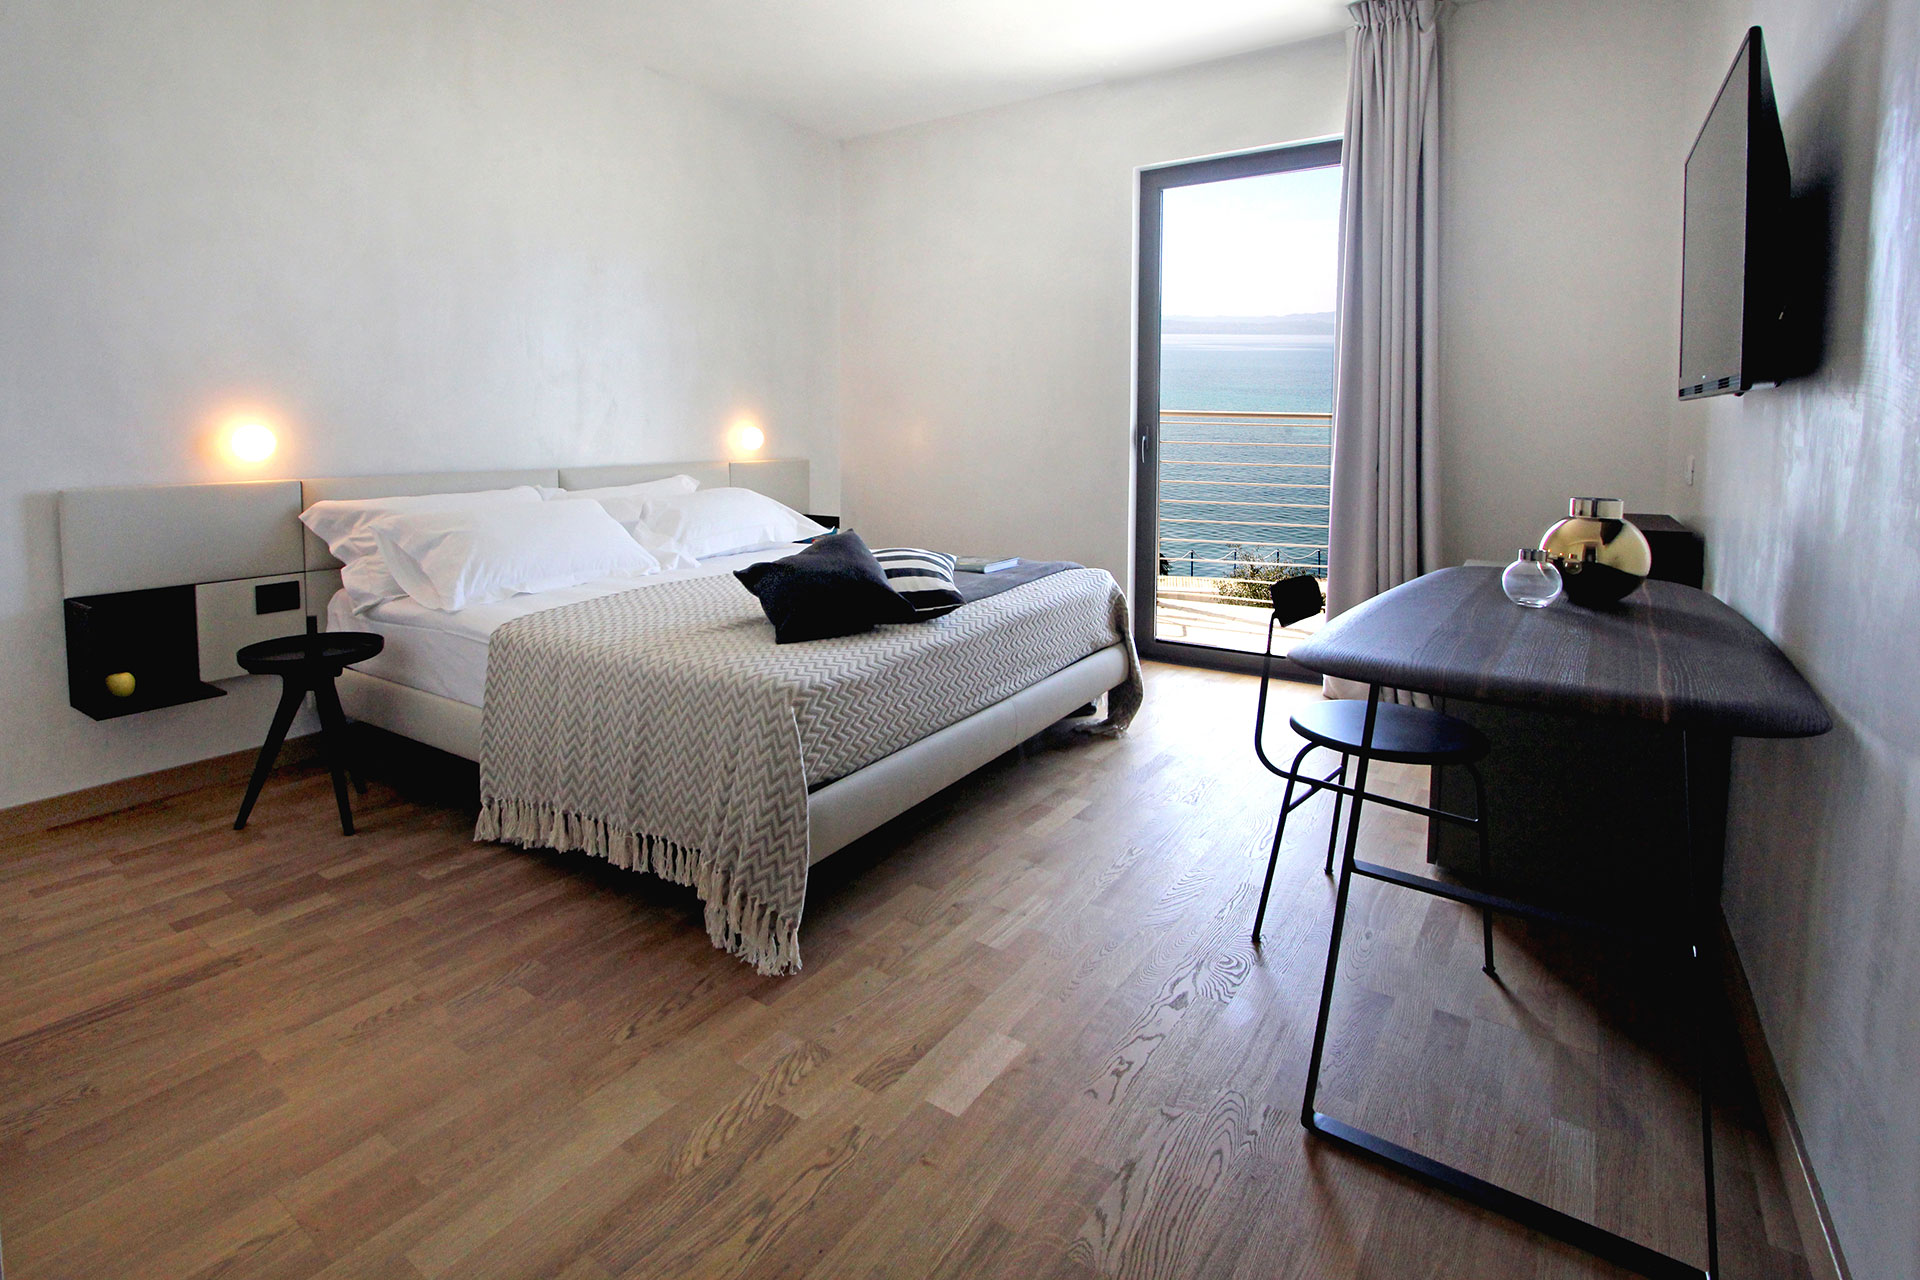 AQVA BOUTIQUE HOTEL SIRMIONE 18 rooms boutique hotel on the Lake